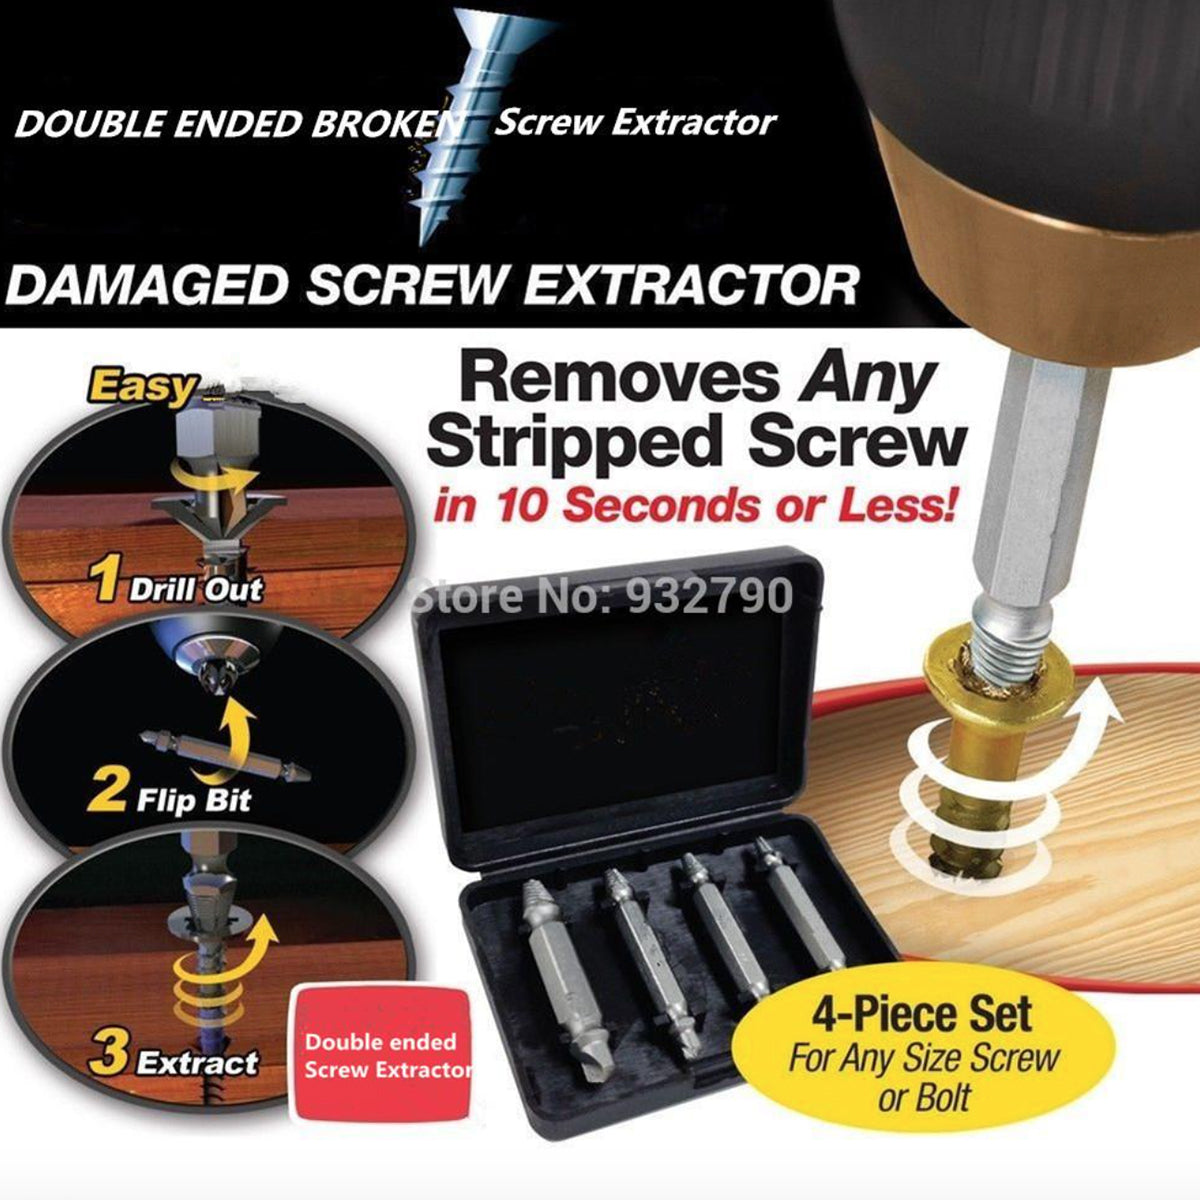 4-Piece Set: DrillPro Double-Sided Damaged Screw Extractors